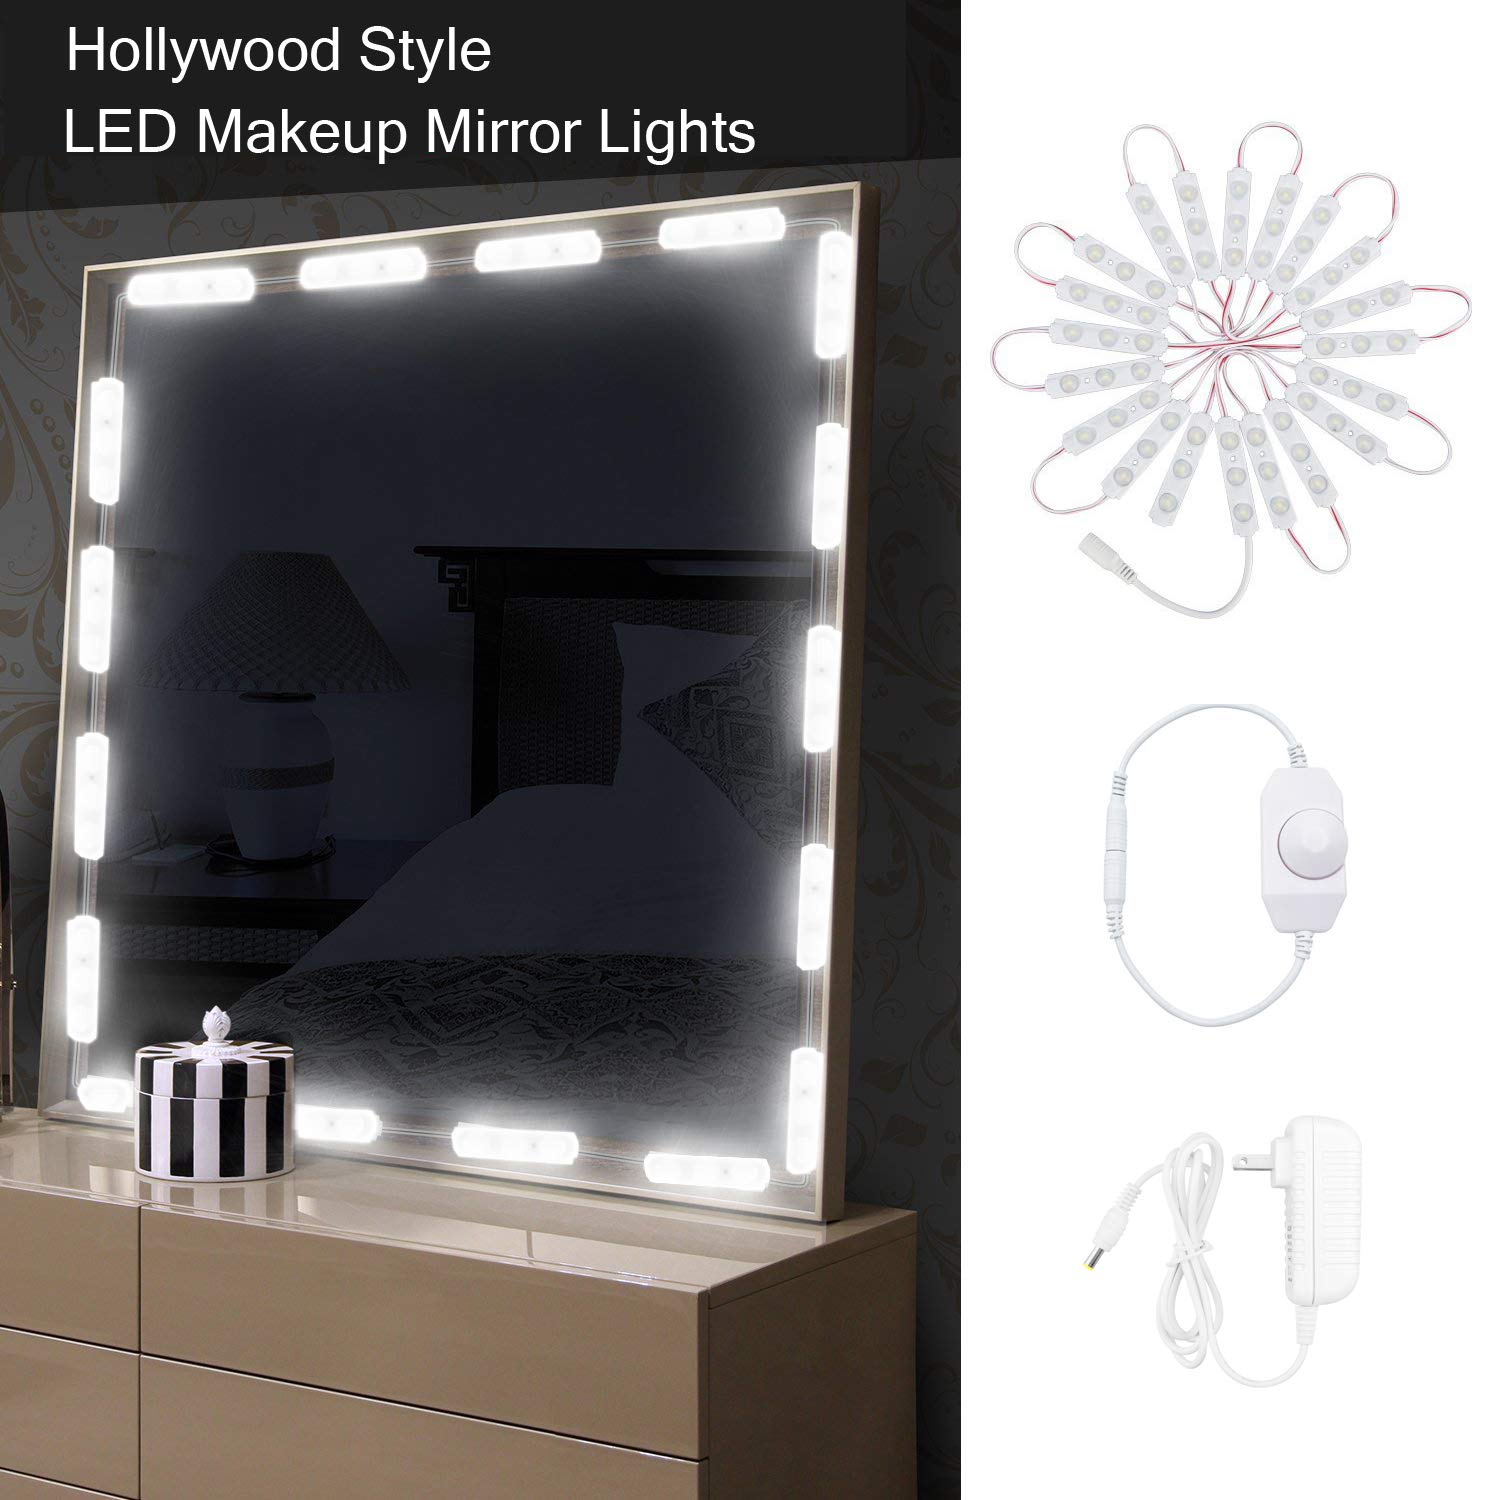 LED Makeup Mirror Lights Kit,Hollywood Style Vanity Mirror Light,10ft Ultra Bright Makeup Lights, Dimmable Lights Strip,for Dressing Table, Bathroom, Decorative Walls (Includes Power Supply)